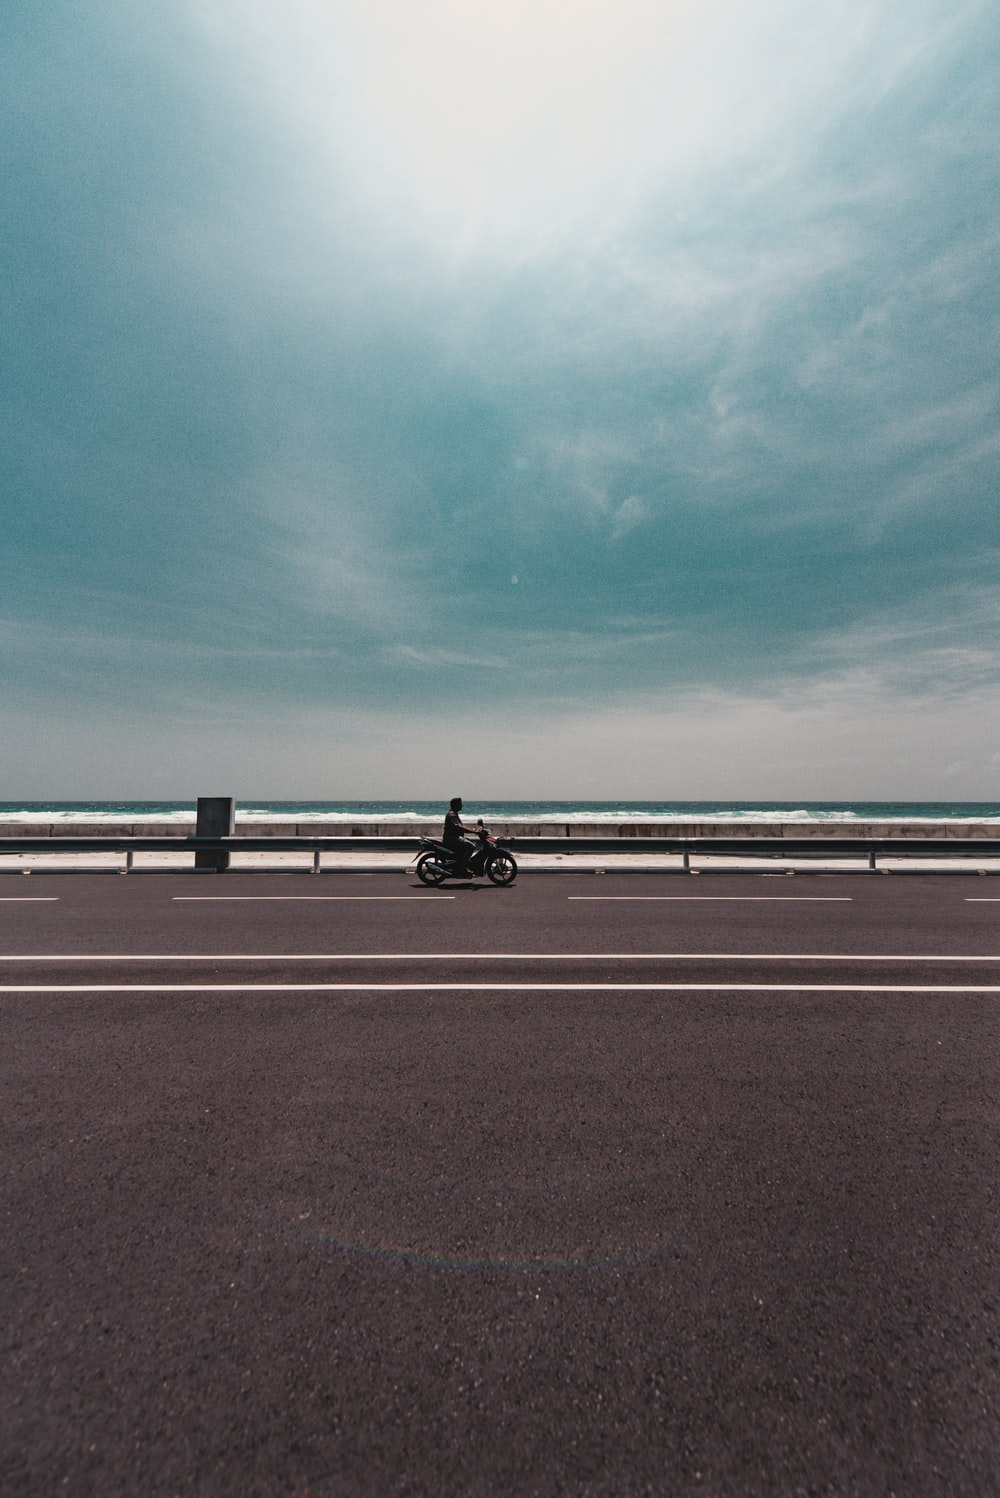 person riding motorcycle on empty road during daytime